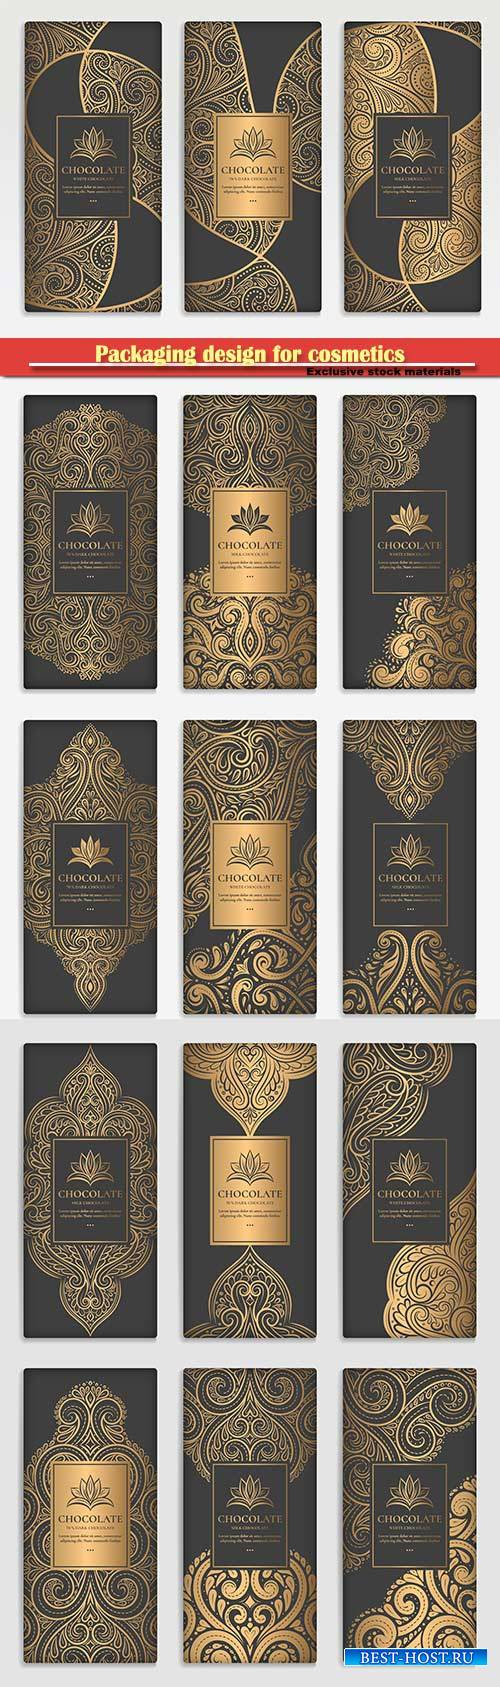 Packaging design for cosmetics, luxury golden vector ornament